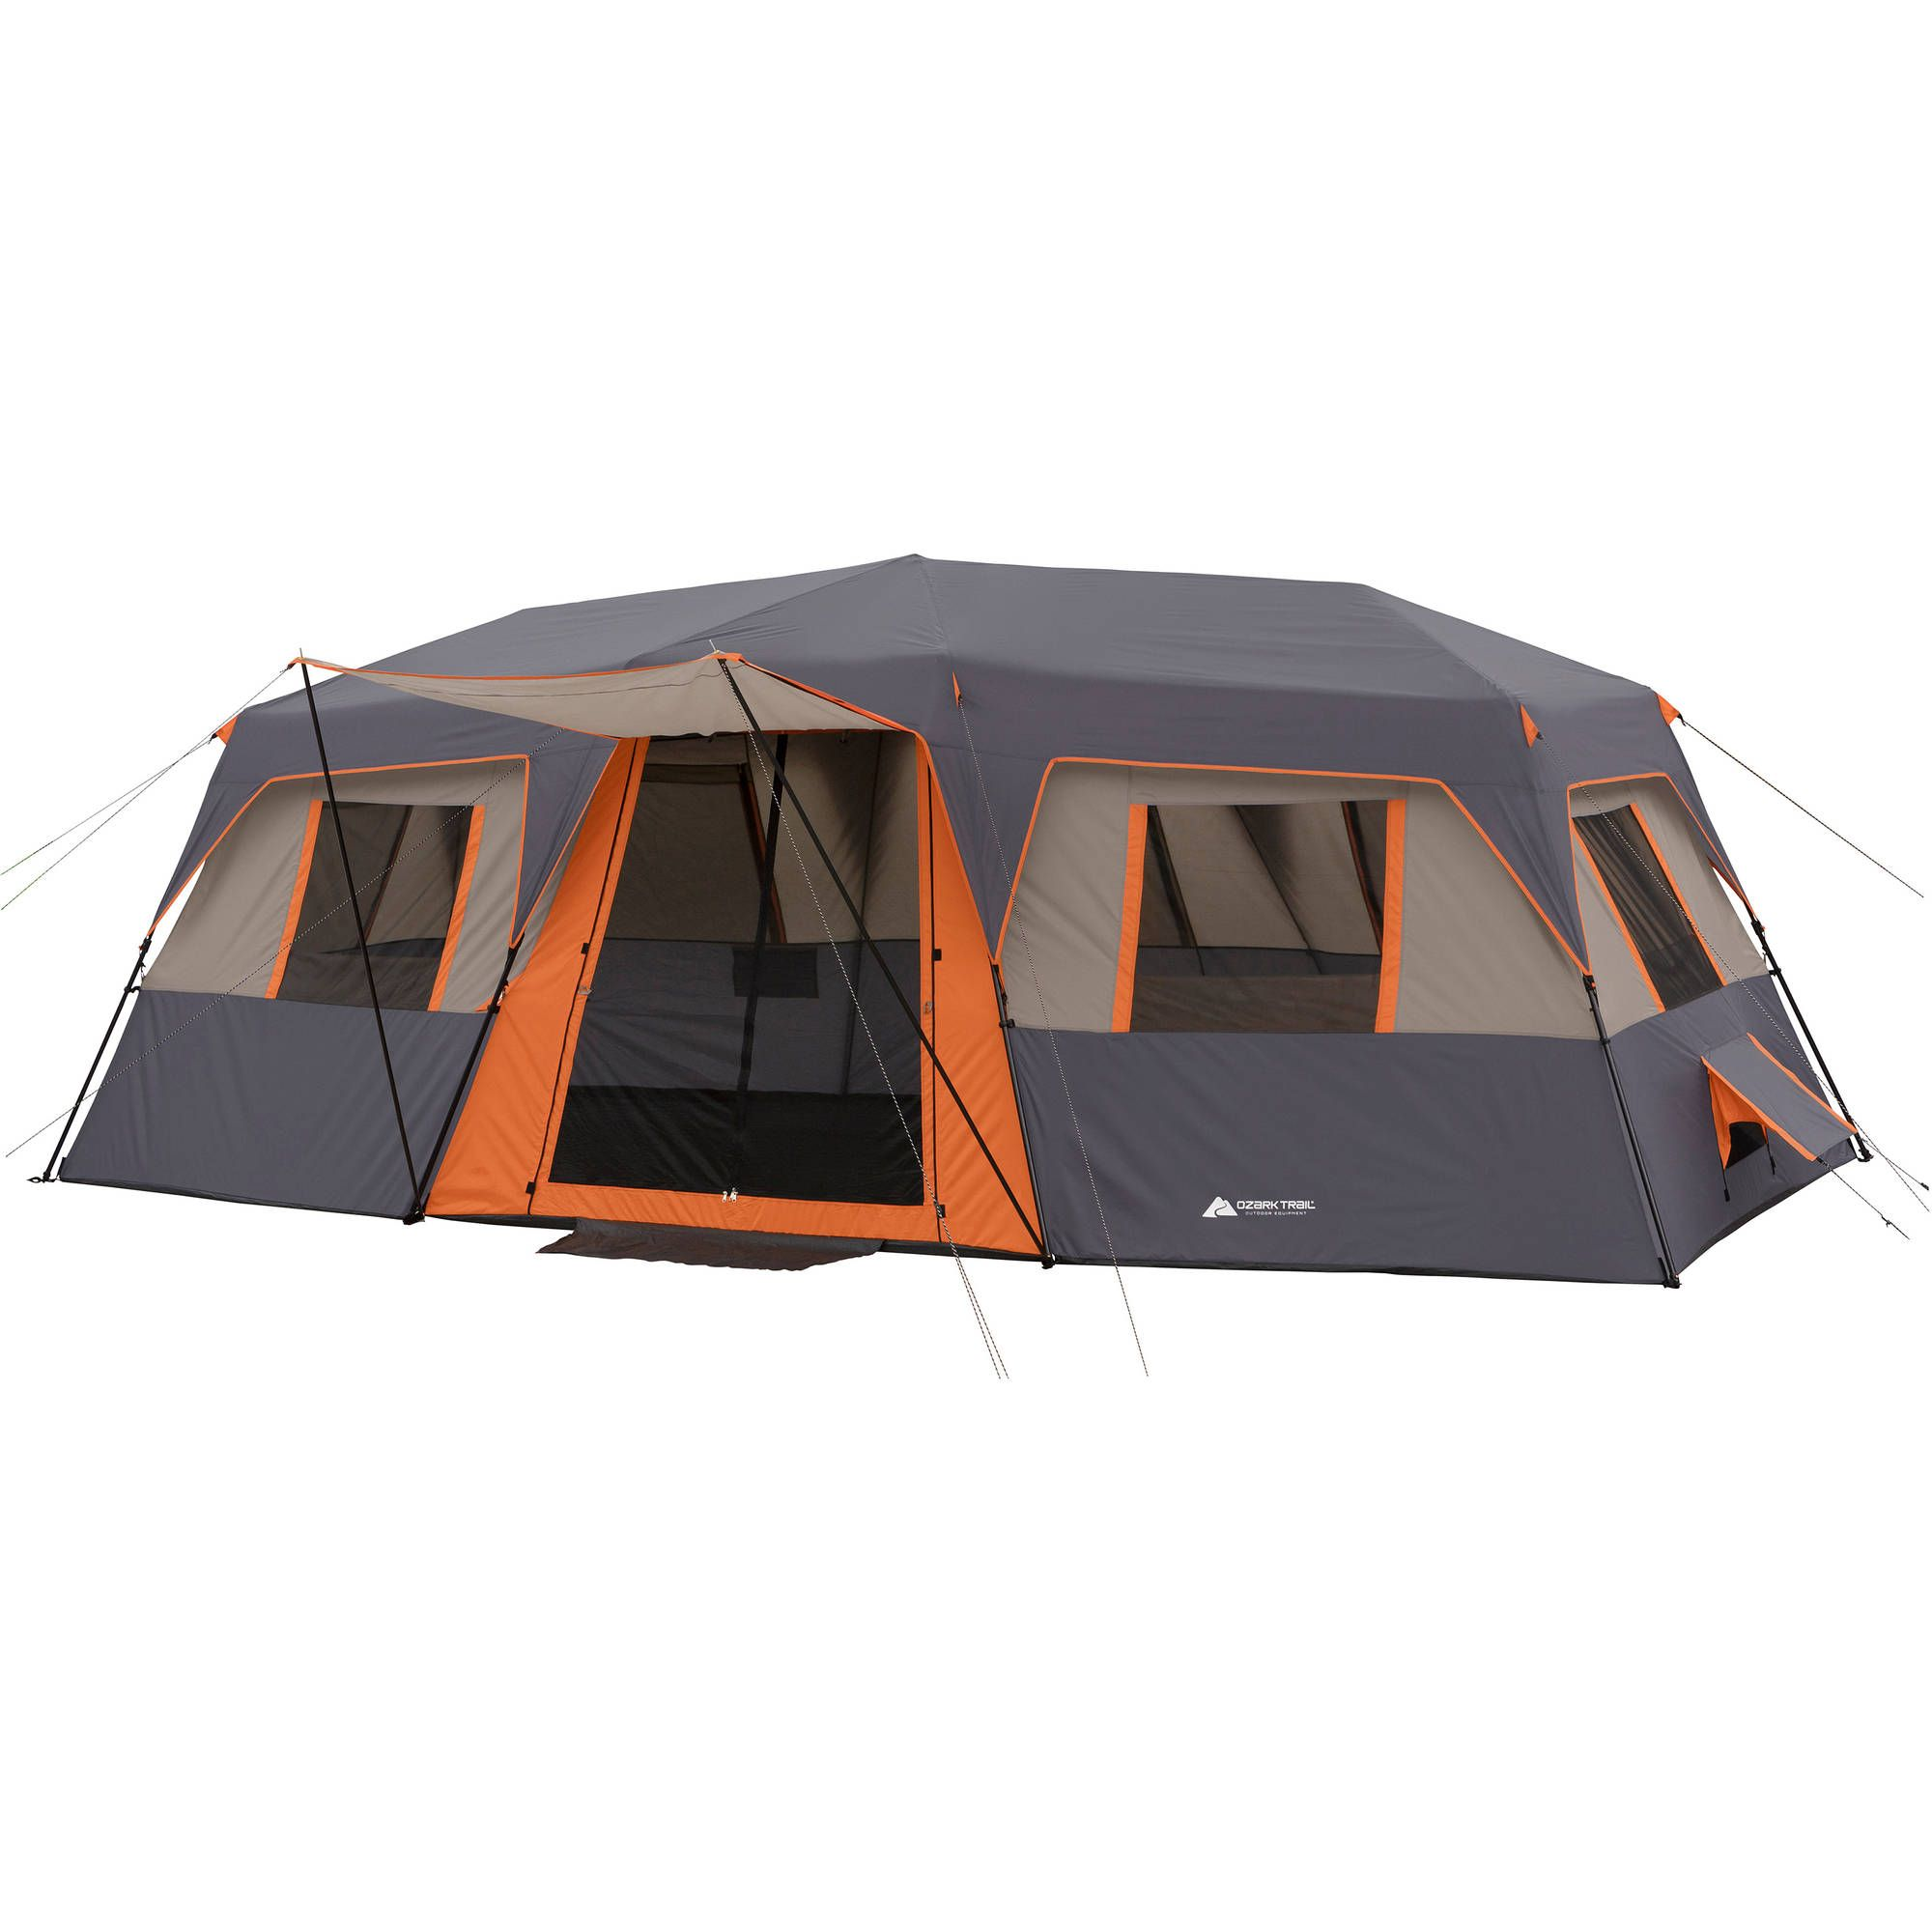 Ozark Trail 12 Person Instant Cabin Tent with Two Queen Airbeds c&ing warm  sc 1 st  Pinterest & Ozark Trail Instant 20u0027 x 10u0027 Cabin Camping Tent Sleeps 12 ...